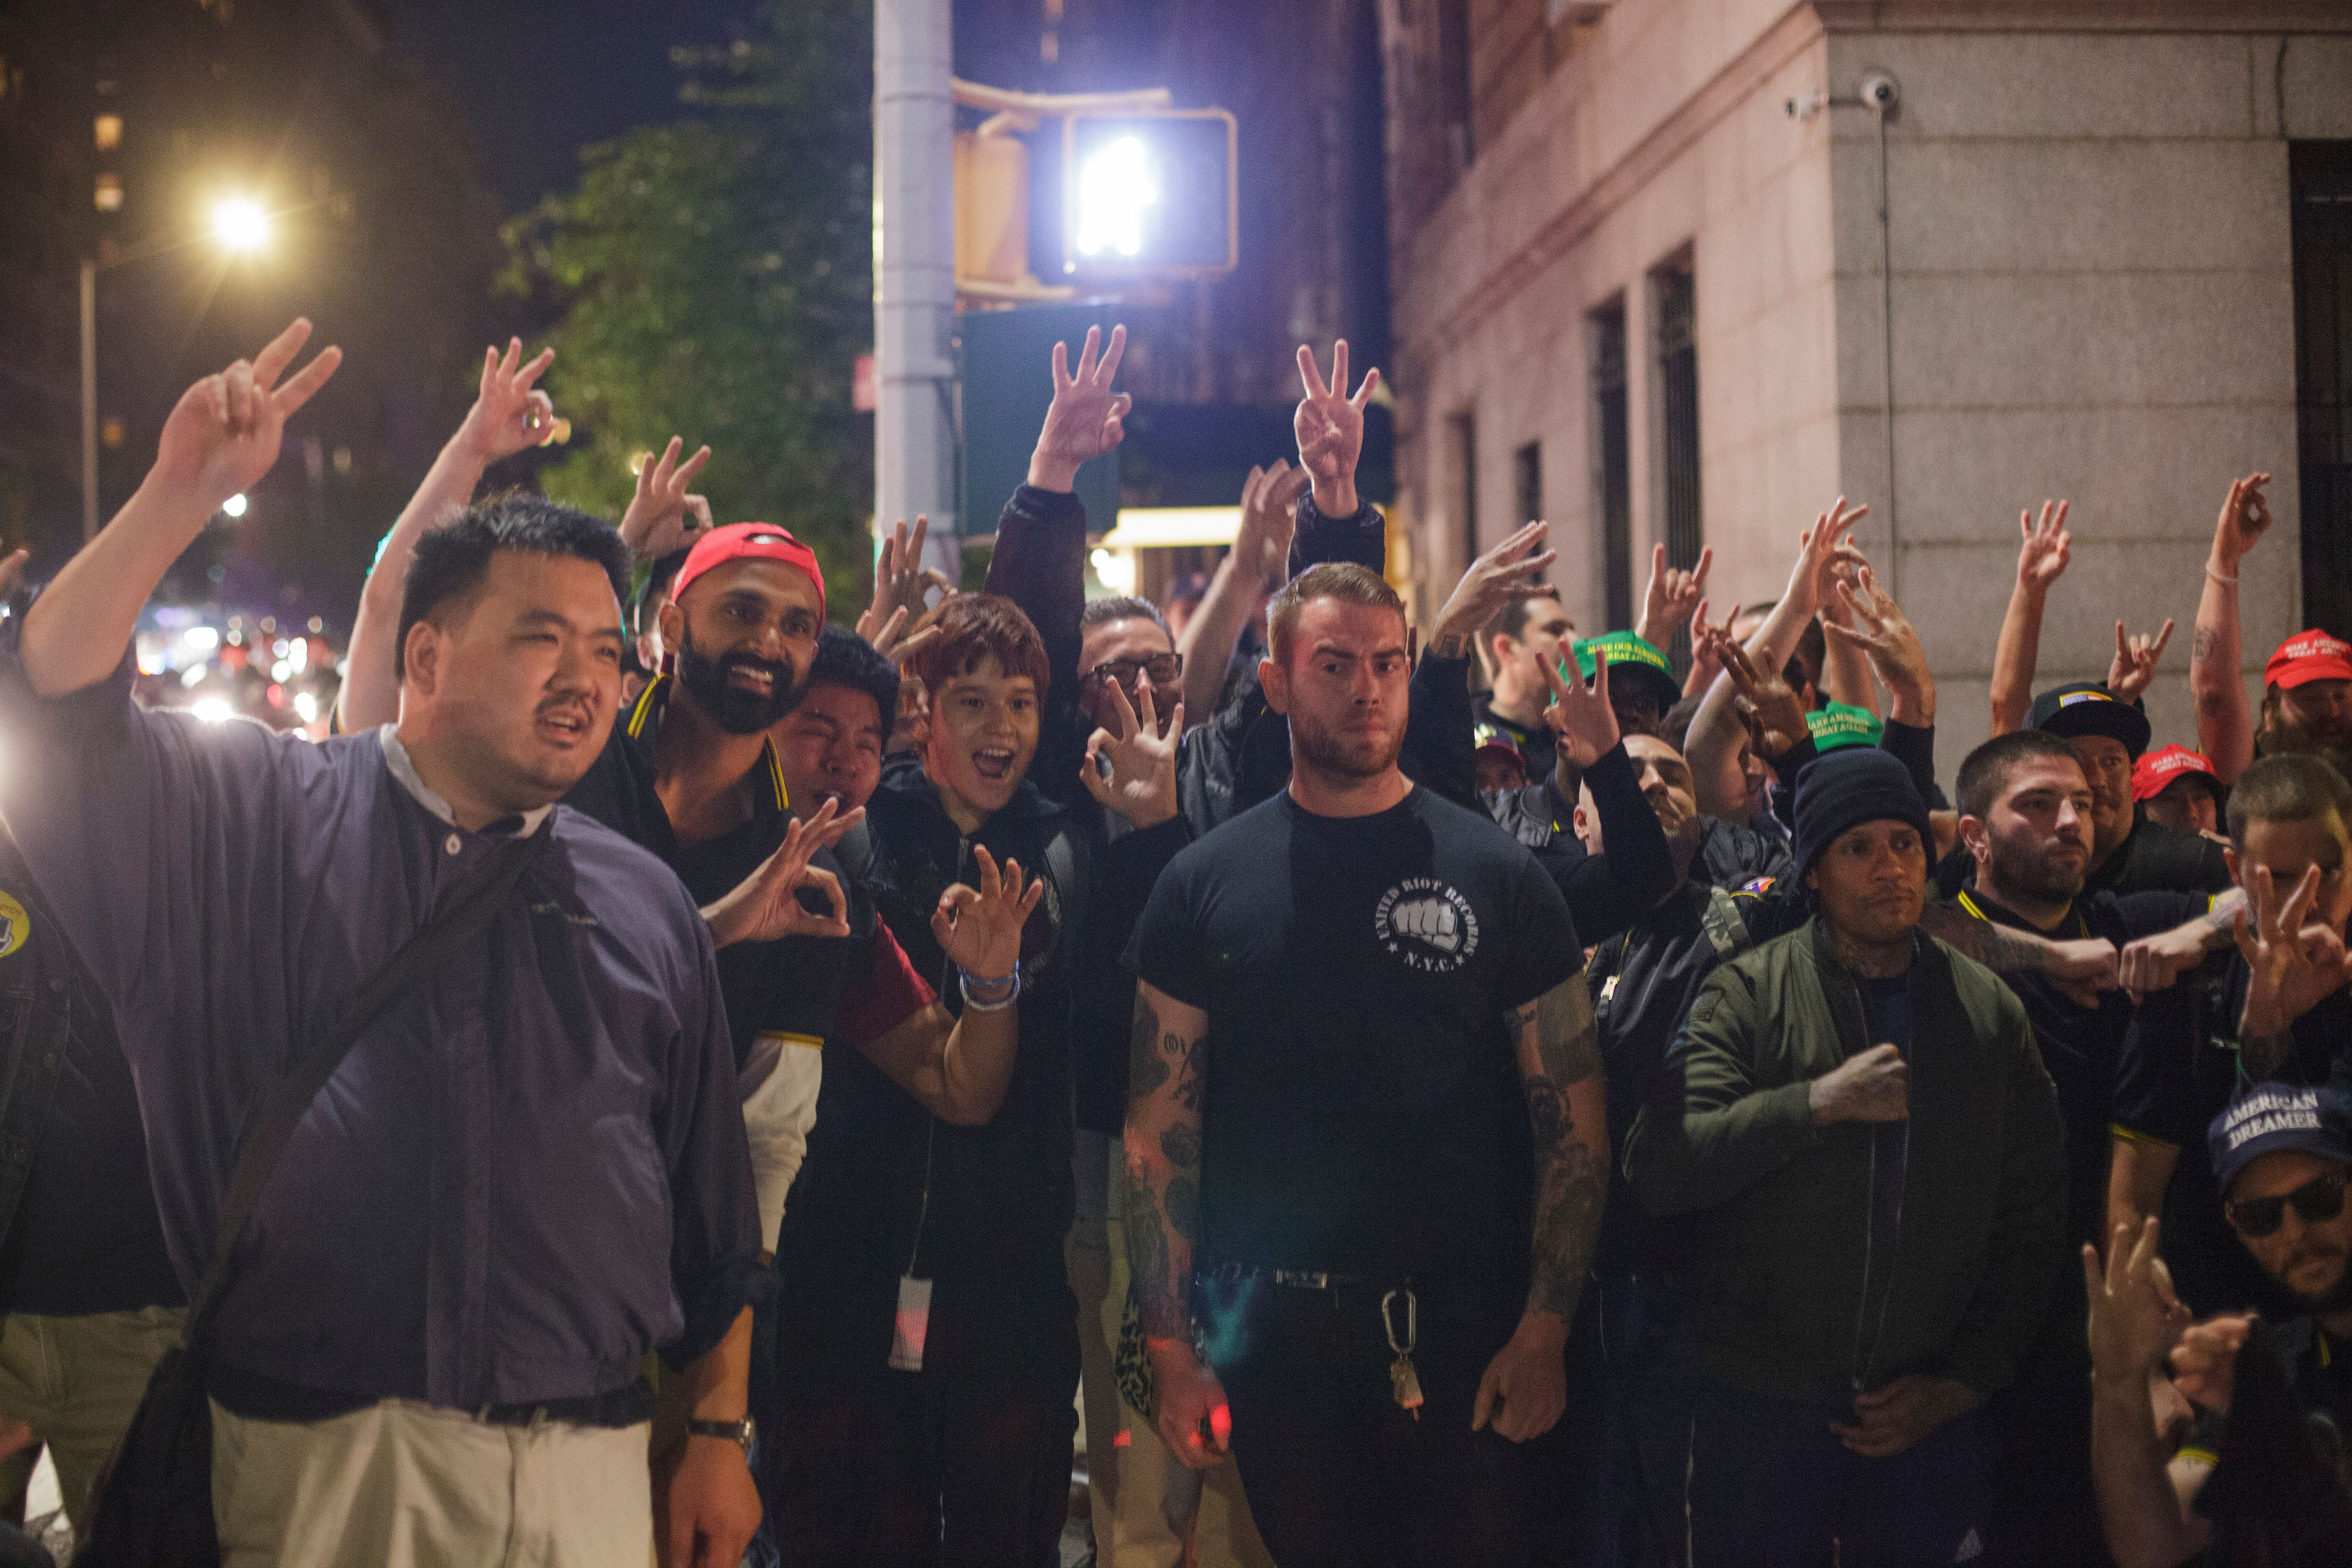 Members of the Proud Boys — some of whom have been arrested — pose for a picture on the night...